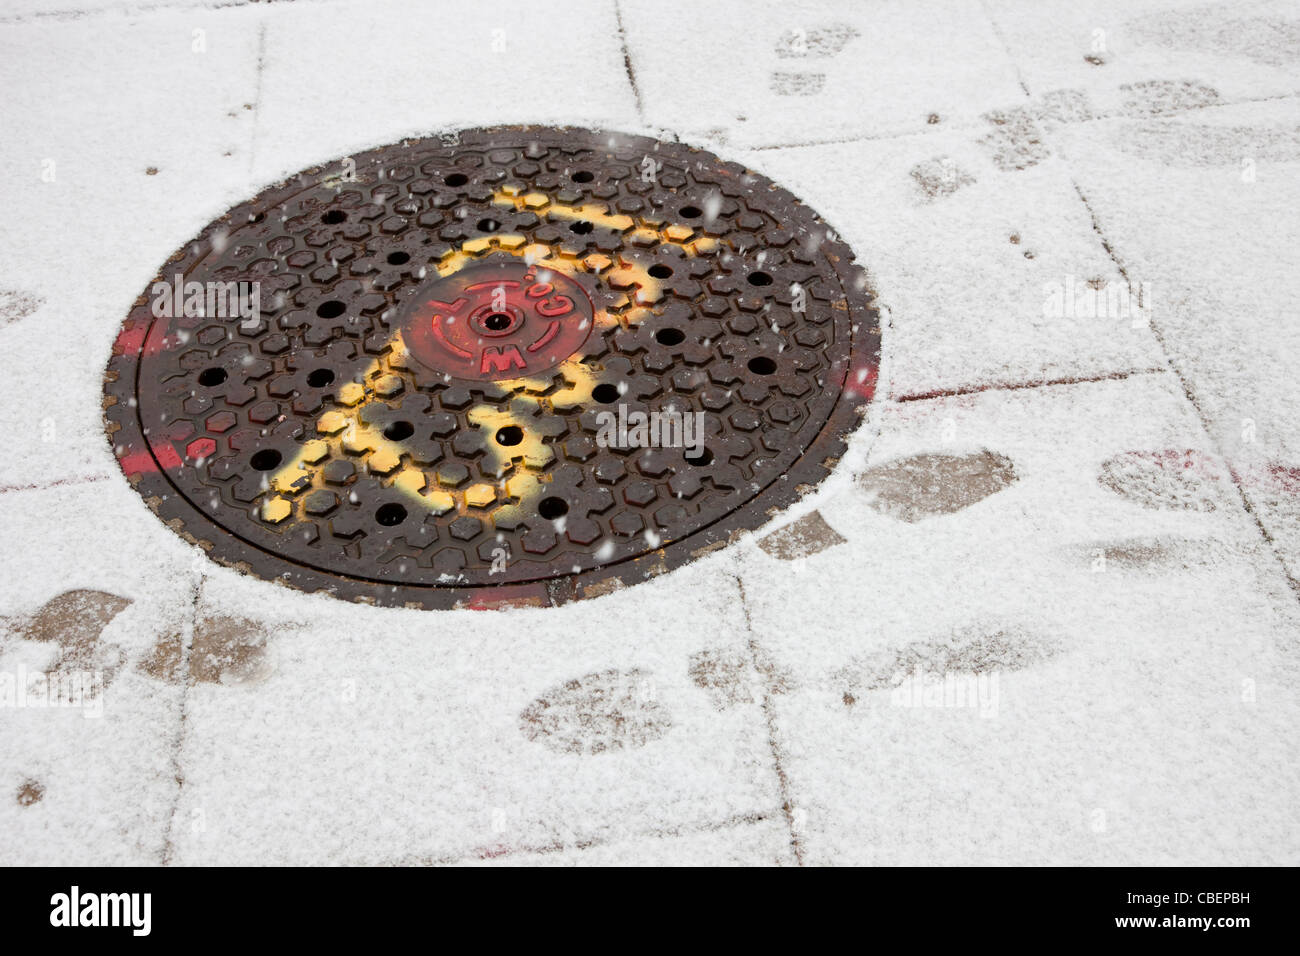 A manhole cover on a snowy sidewalk in winter. - Stock Image